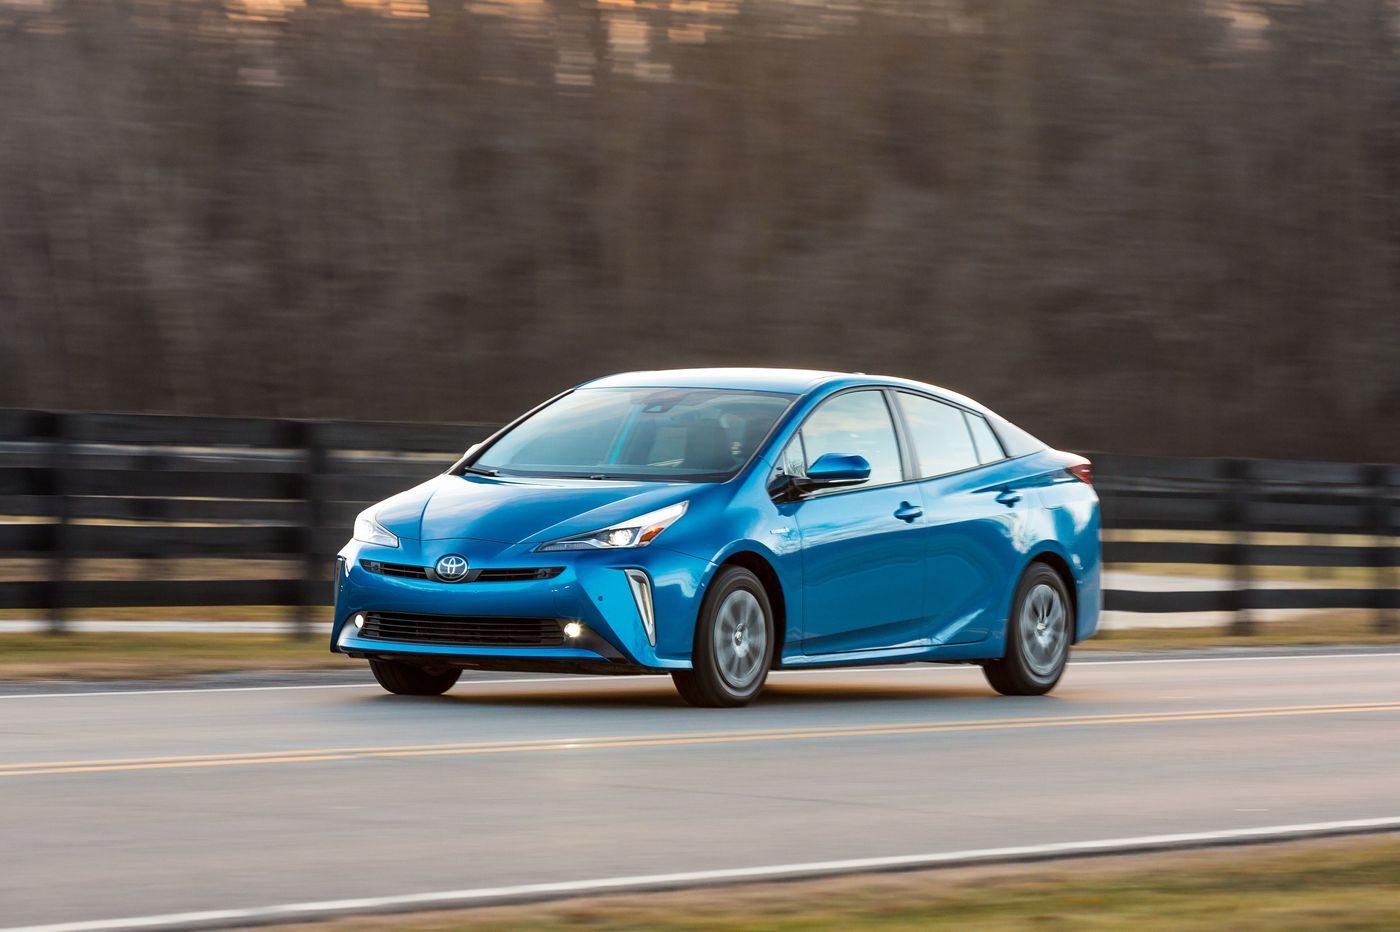 A grippy Prius may add traction, but will we ever know?